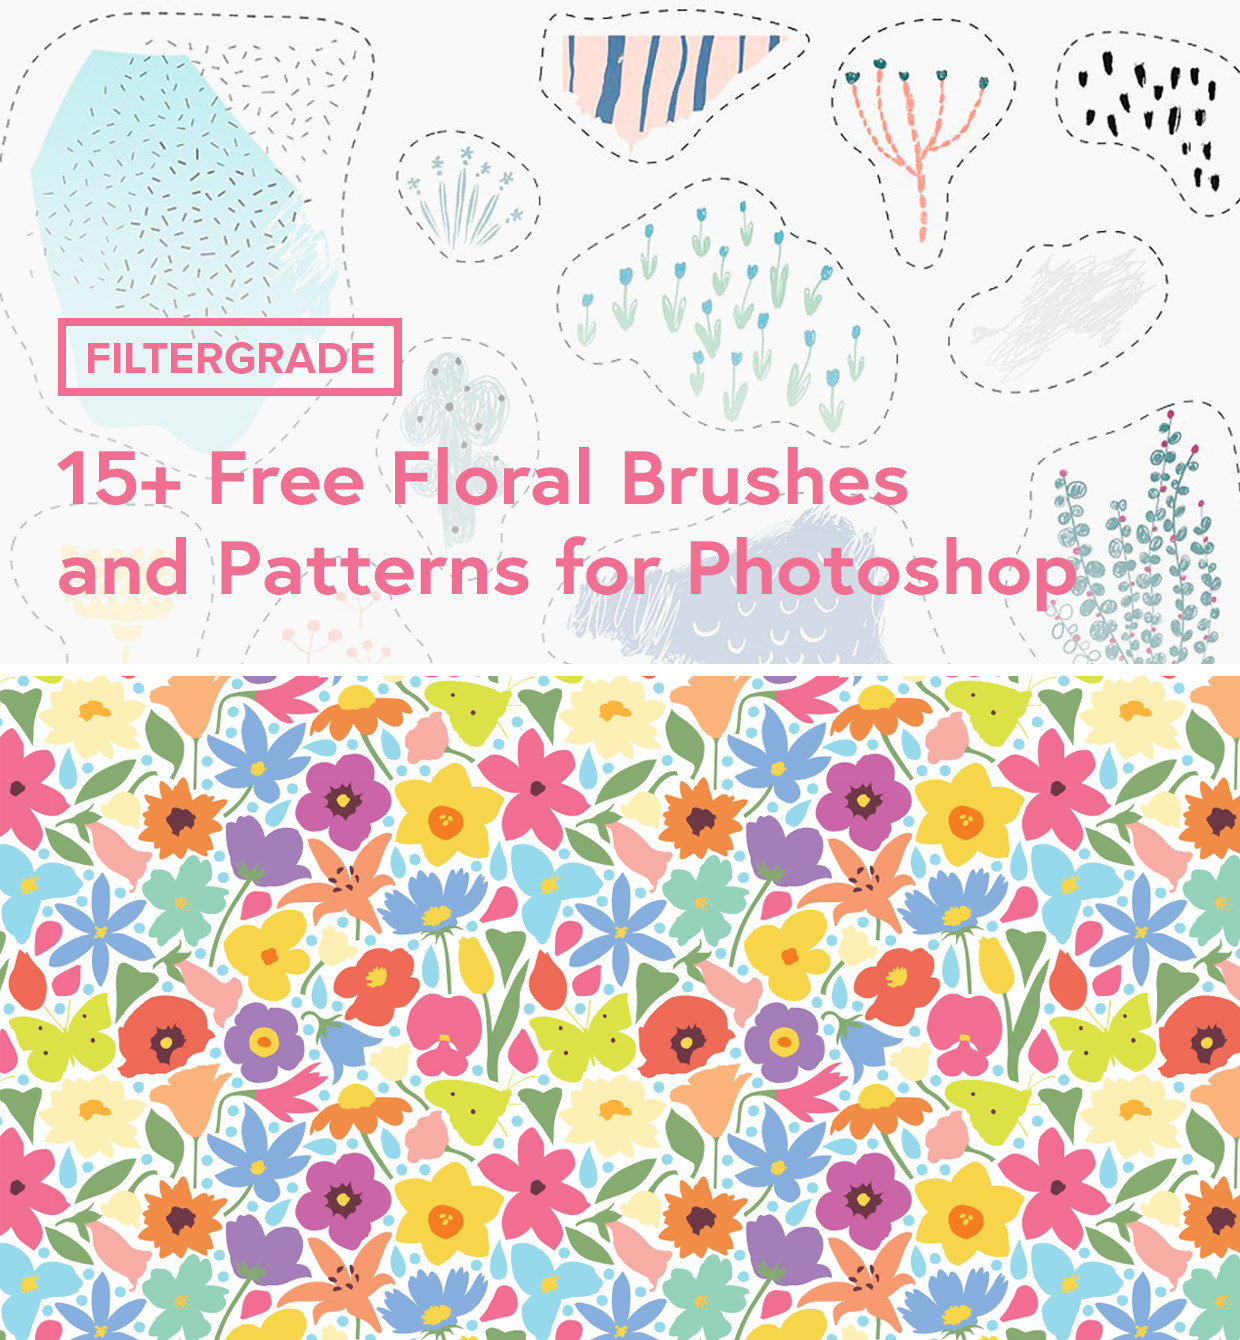 15+ Free Floral Brushes And Patterns For Photoshop